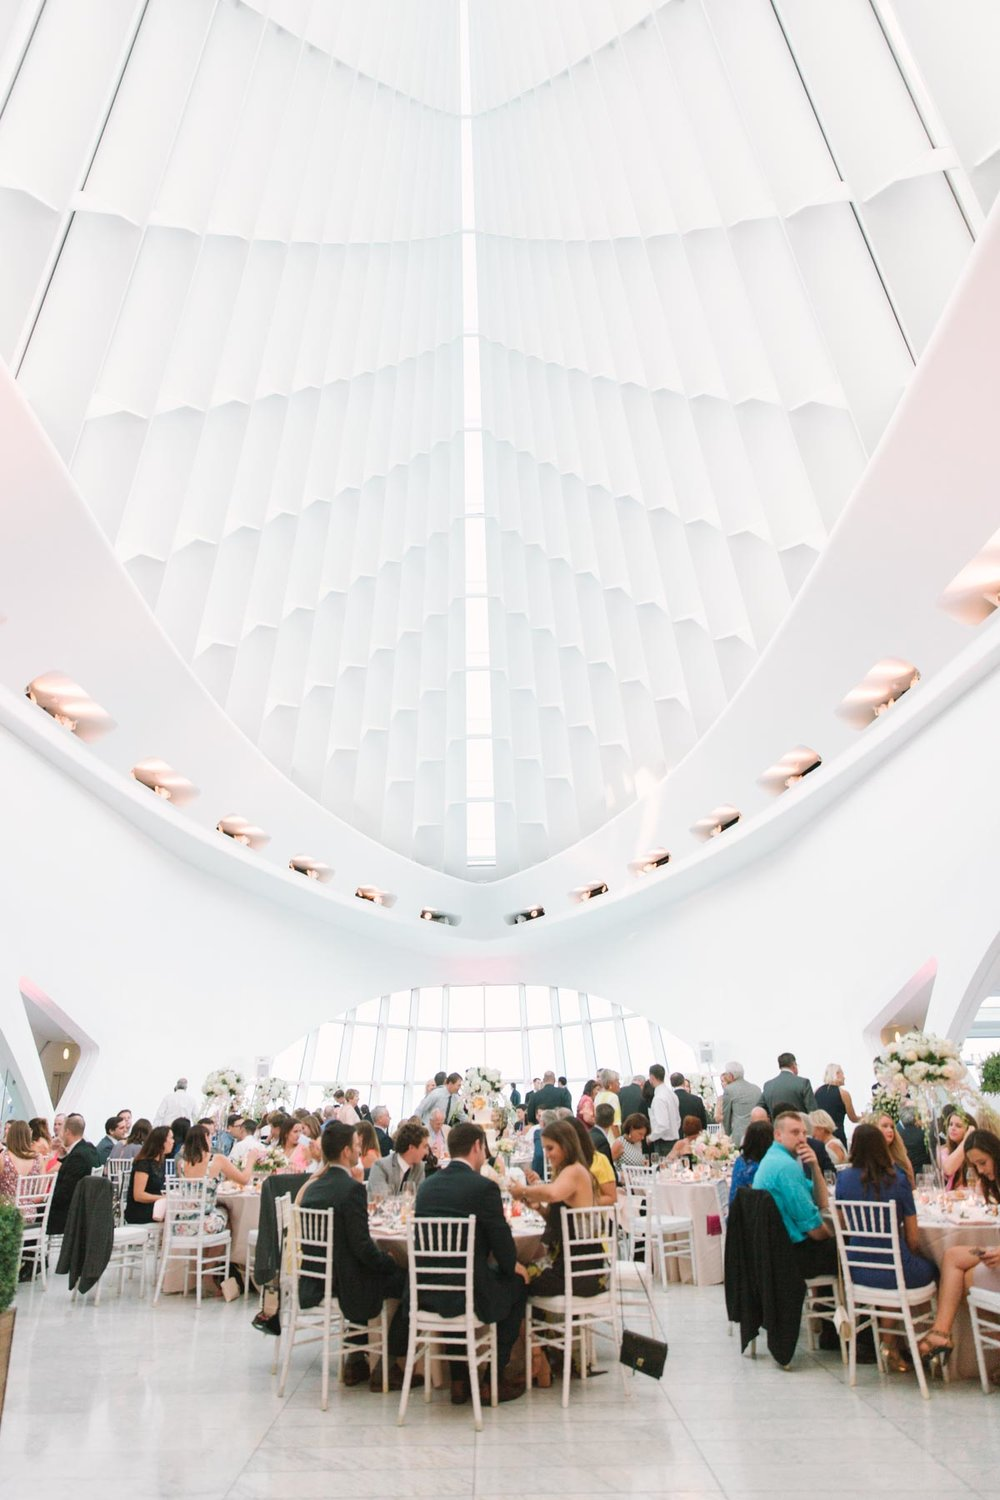 kateweinsteinphoto_milwaukee_art_museum_wedding-244.jpg